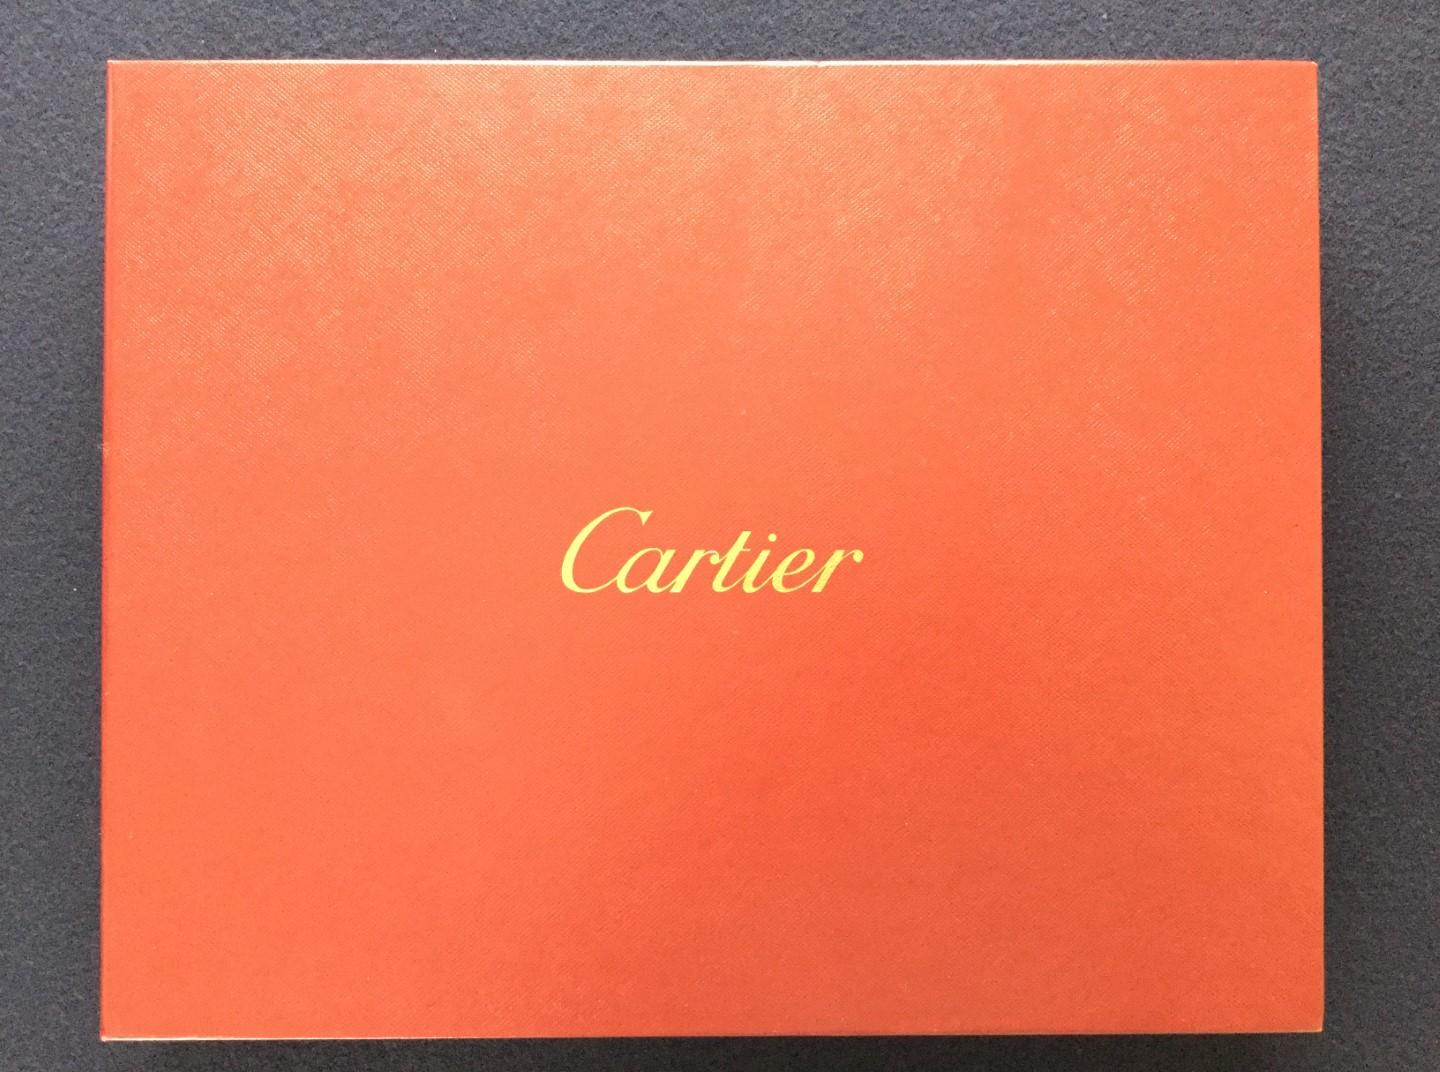 L'ODYSSEE DE CARTIER 2012 Photobook L'ODYSSEE DE CARTIER [Good] [Hardcover] L'Odyssee de Cartier - 2012 - Published by Cartier - 36 pages - 33 x 26,5 cm First edition. Hardcover photobook. In good condition.